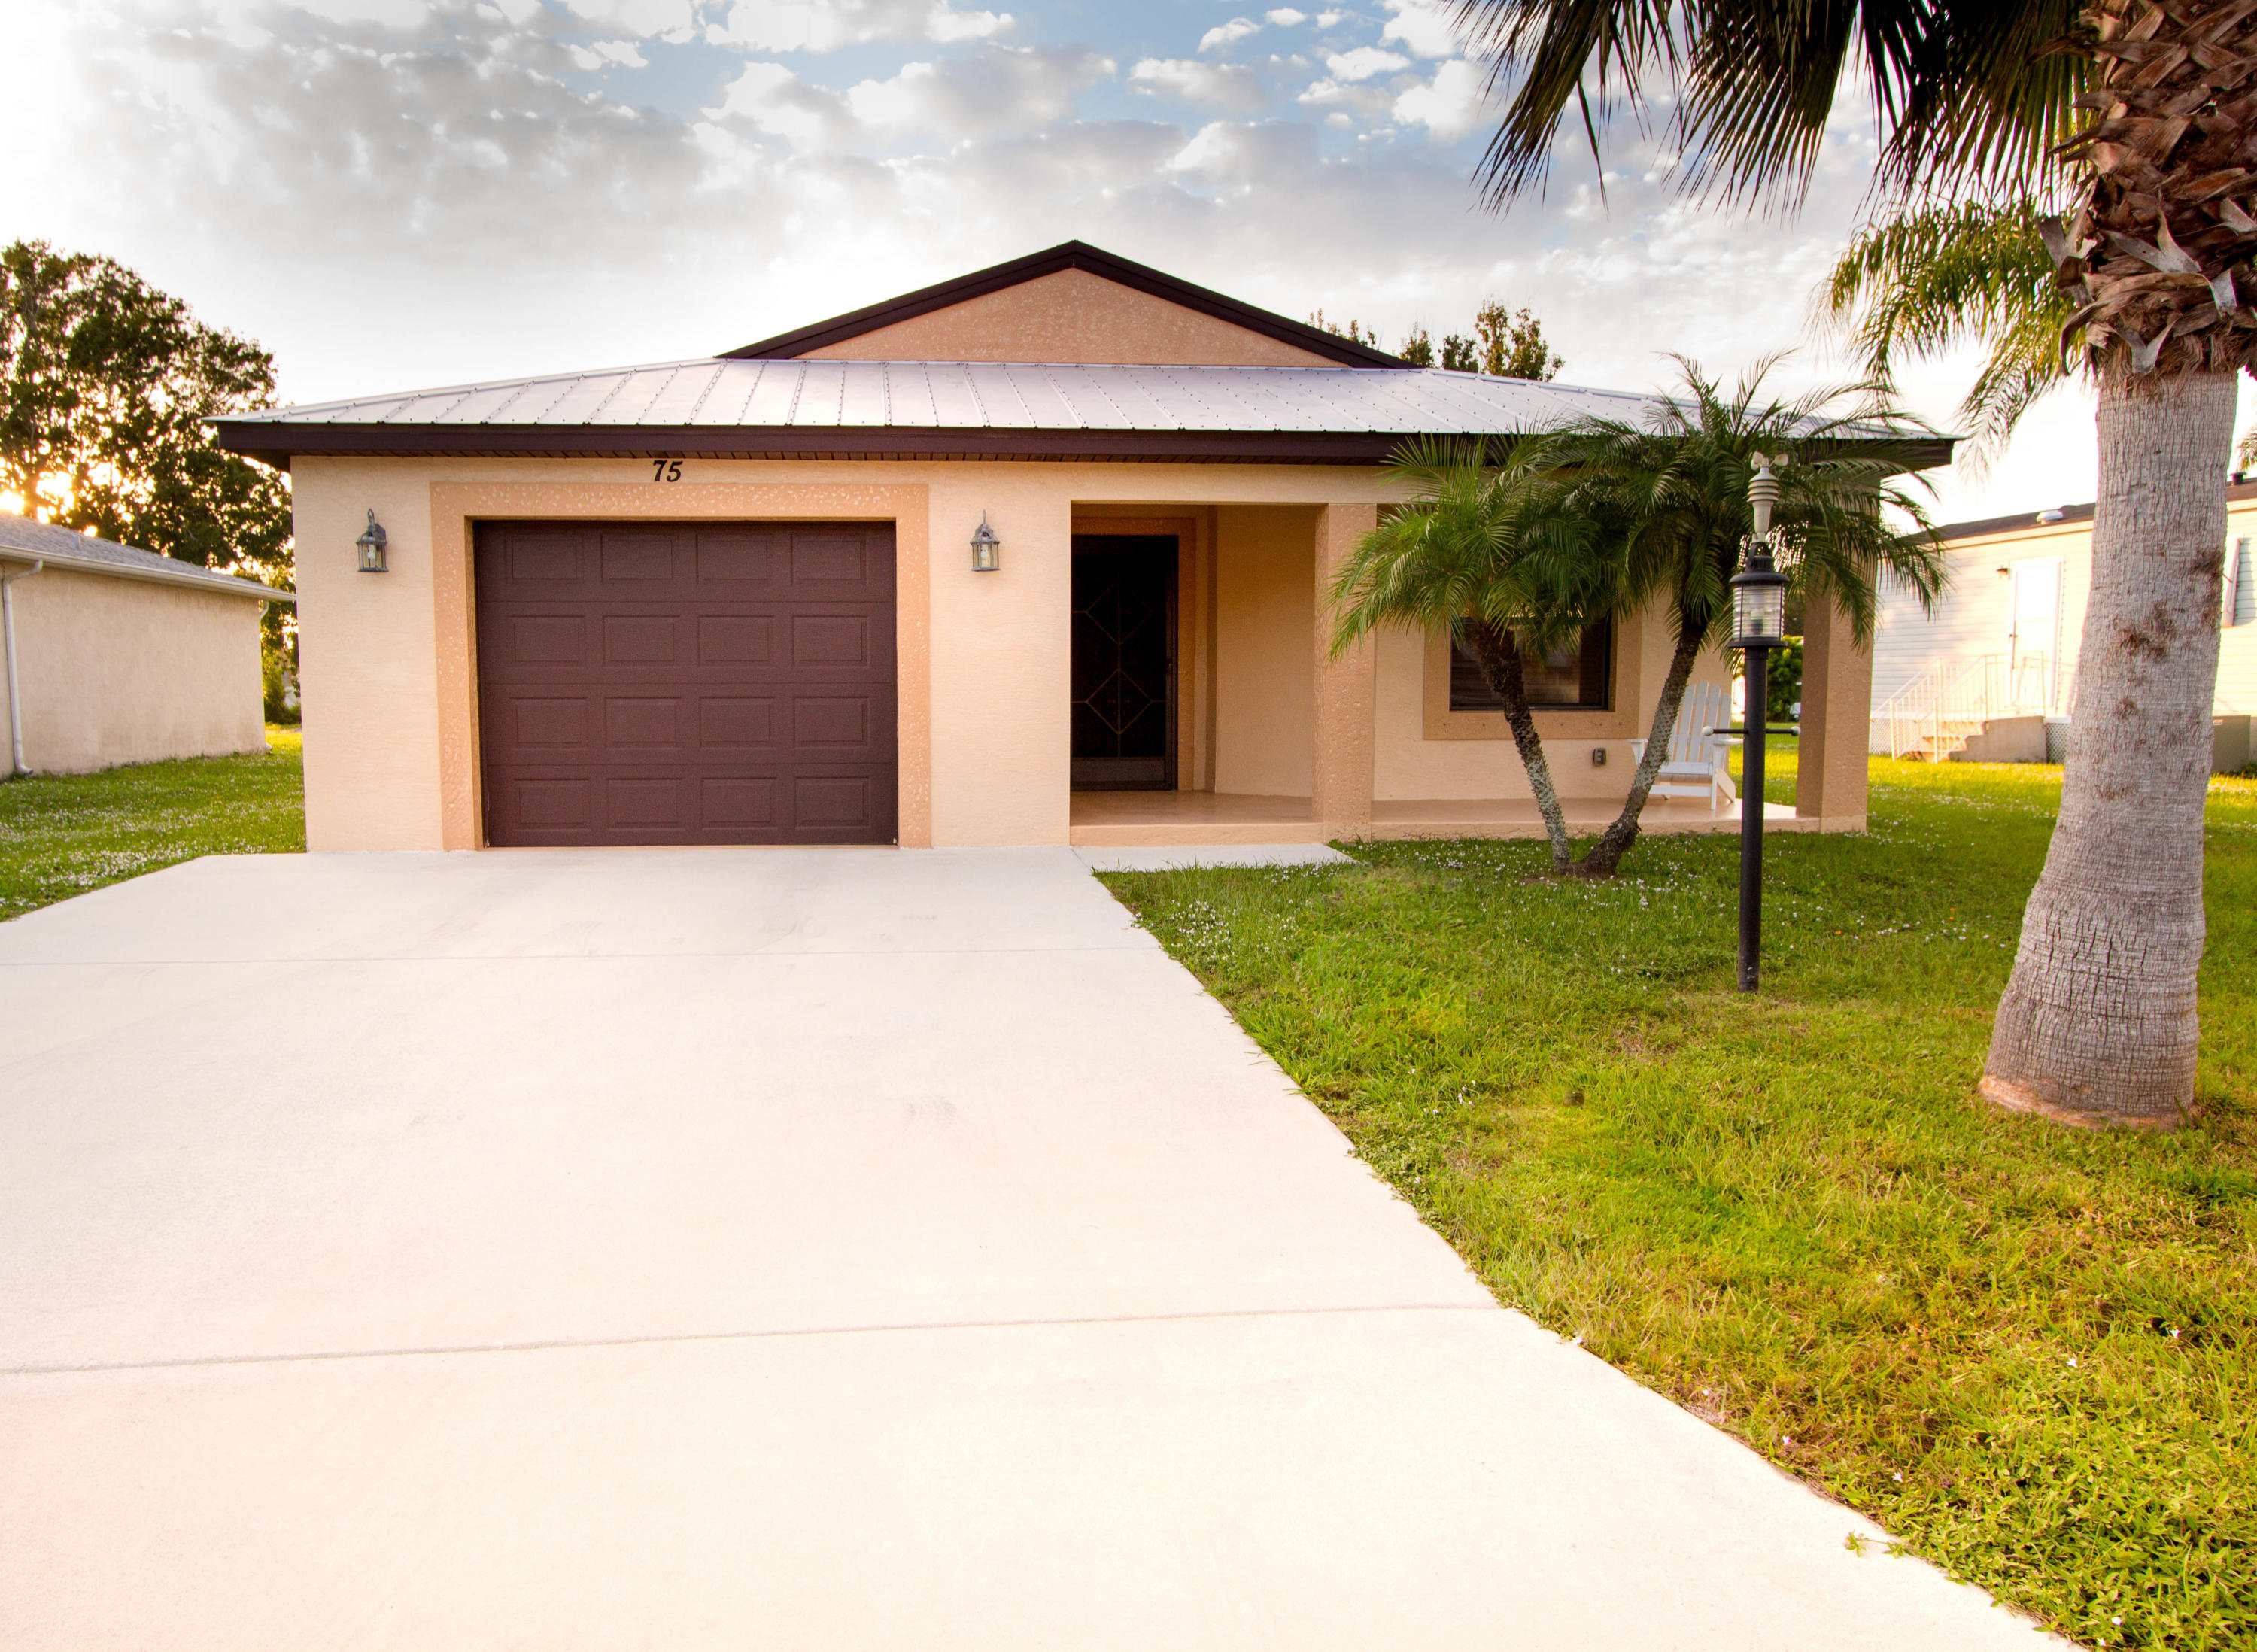 75 Golf Drive, Port Saint Lucie, Florida 34952, 2 Bedrooms Bedrooms, ,2 BathroomsBathrooms,Single Family,For Sale,Golf,RX-10483268